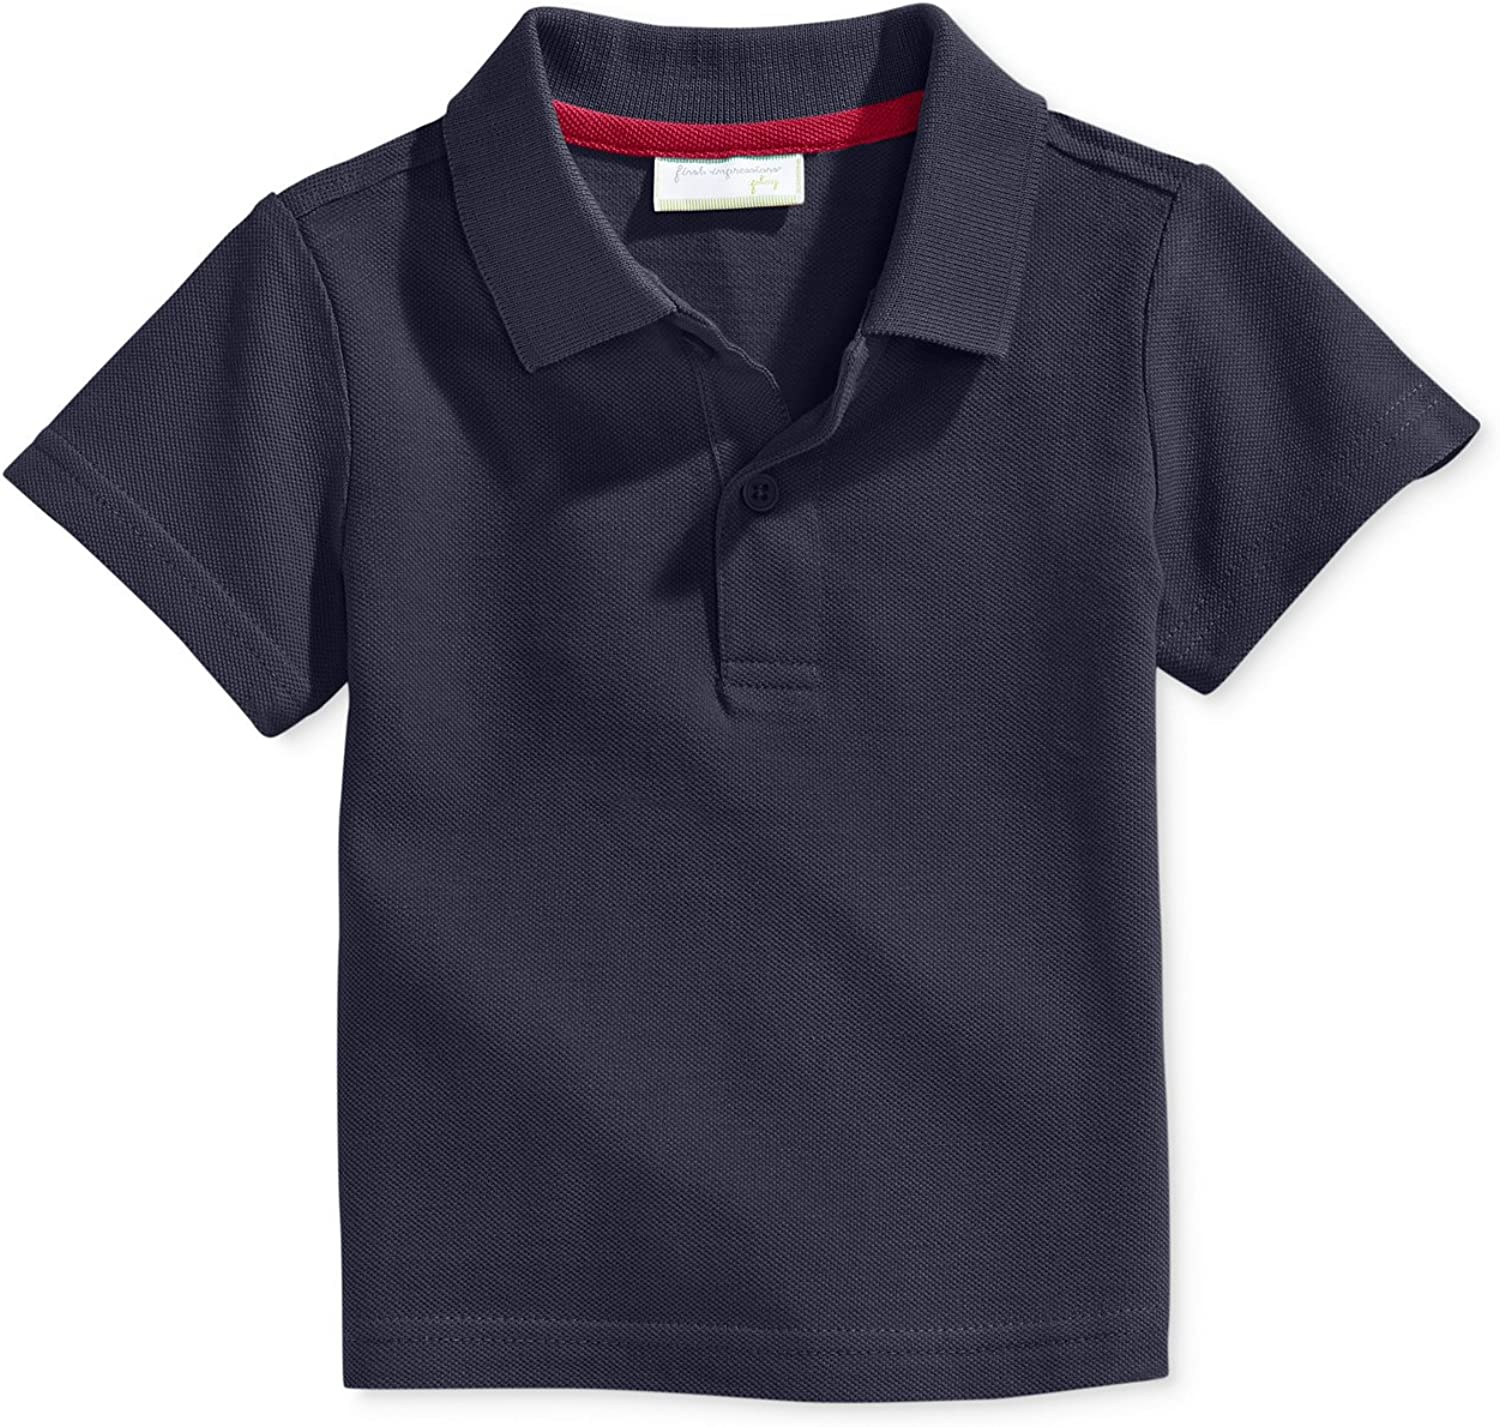 Baby Boys Navy 12 Months First Impressions Cotton Polo Shirt